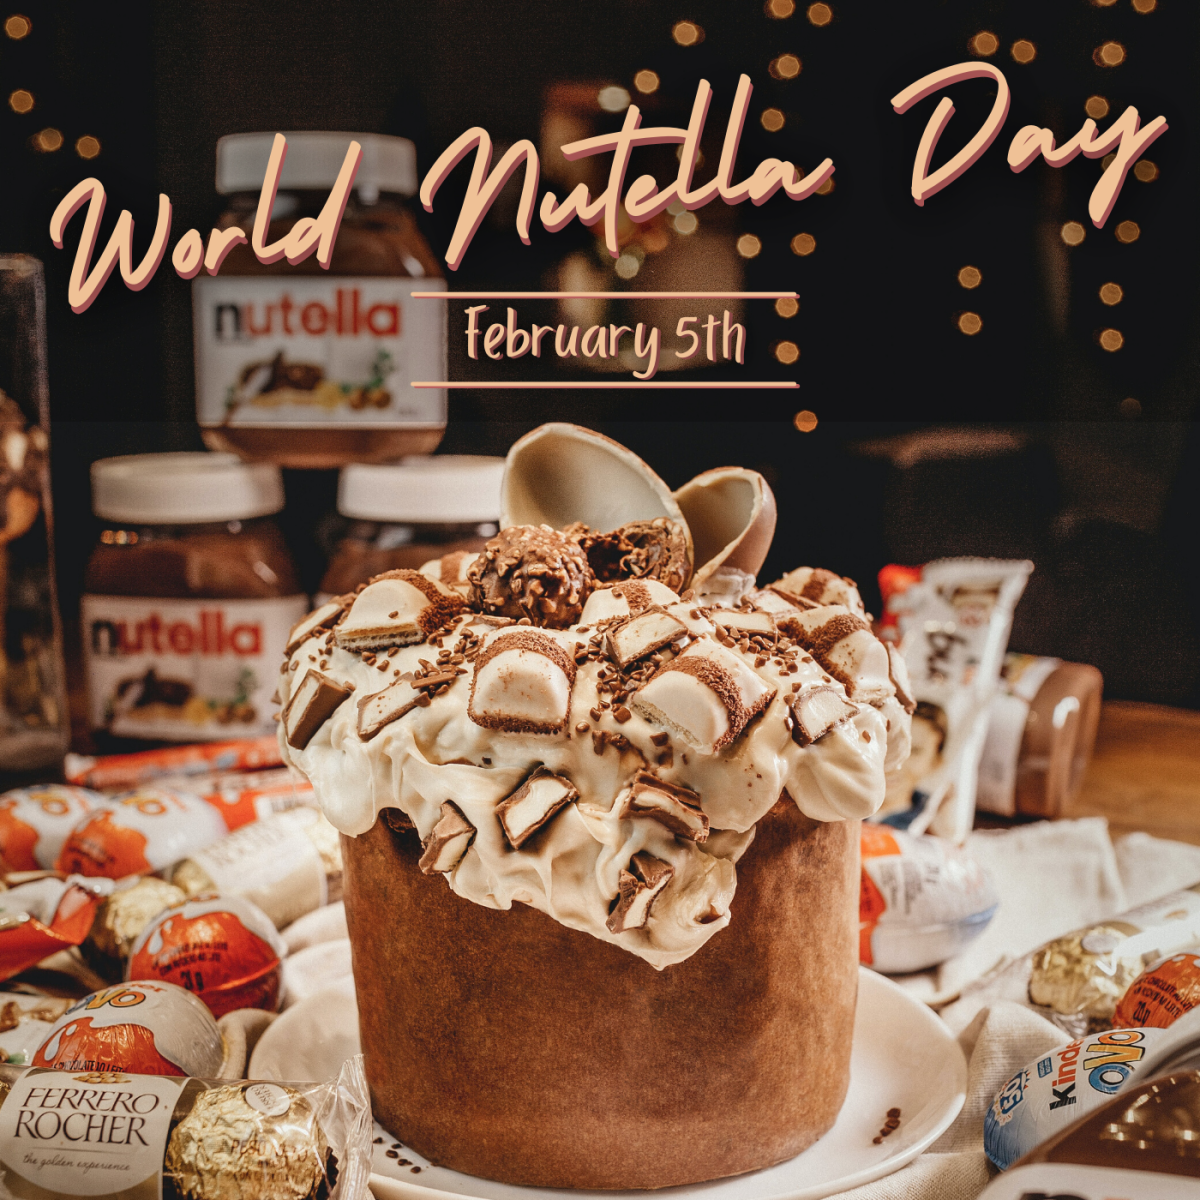 February 5th is World Nutella Day. How will you celebrate?